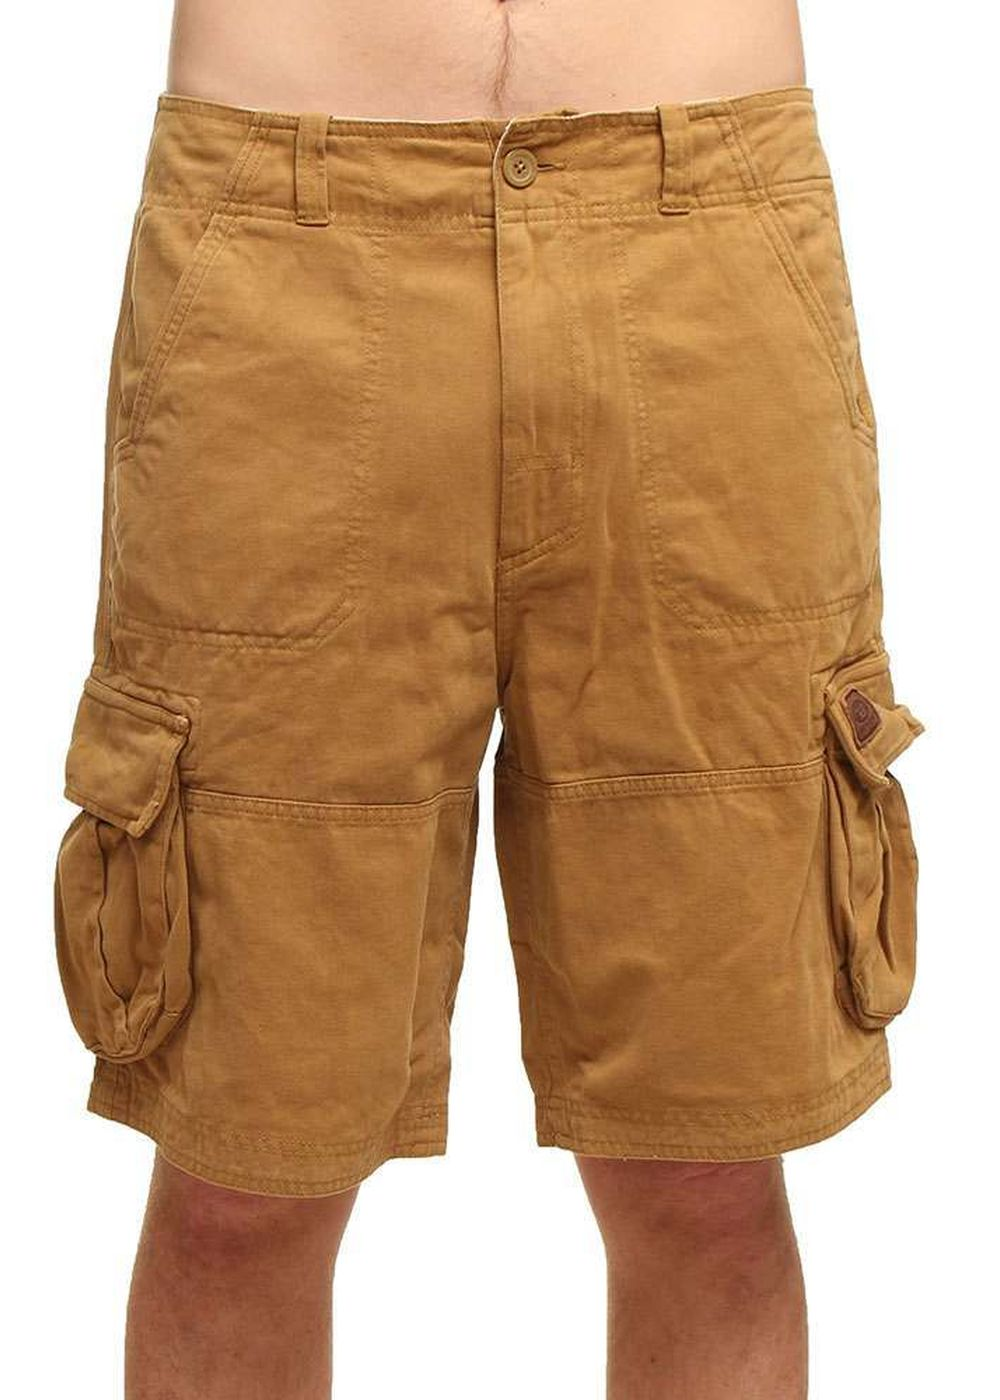 ANIMAL AGOURAS CARGO SHORTS Sand